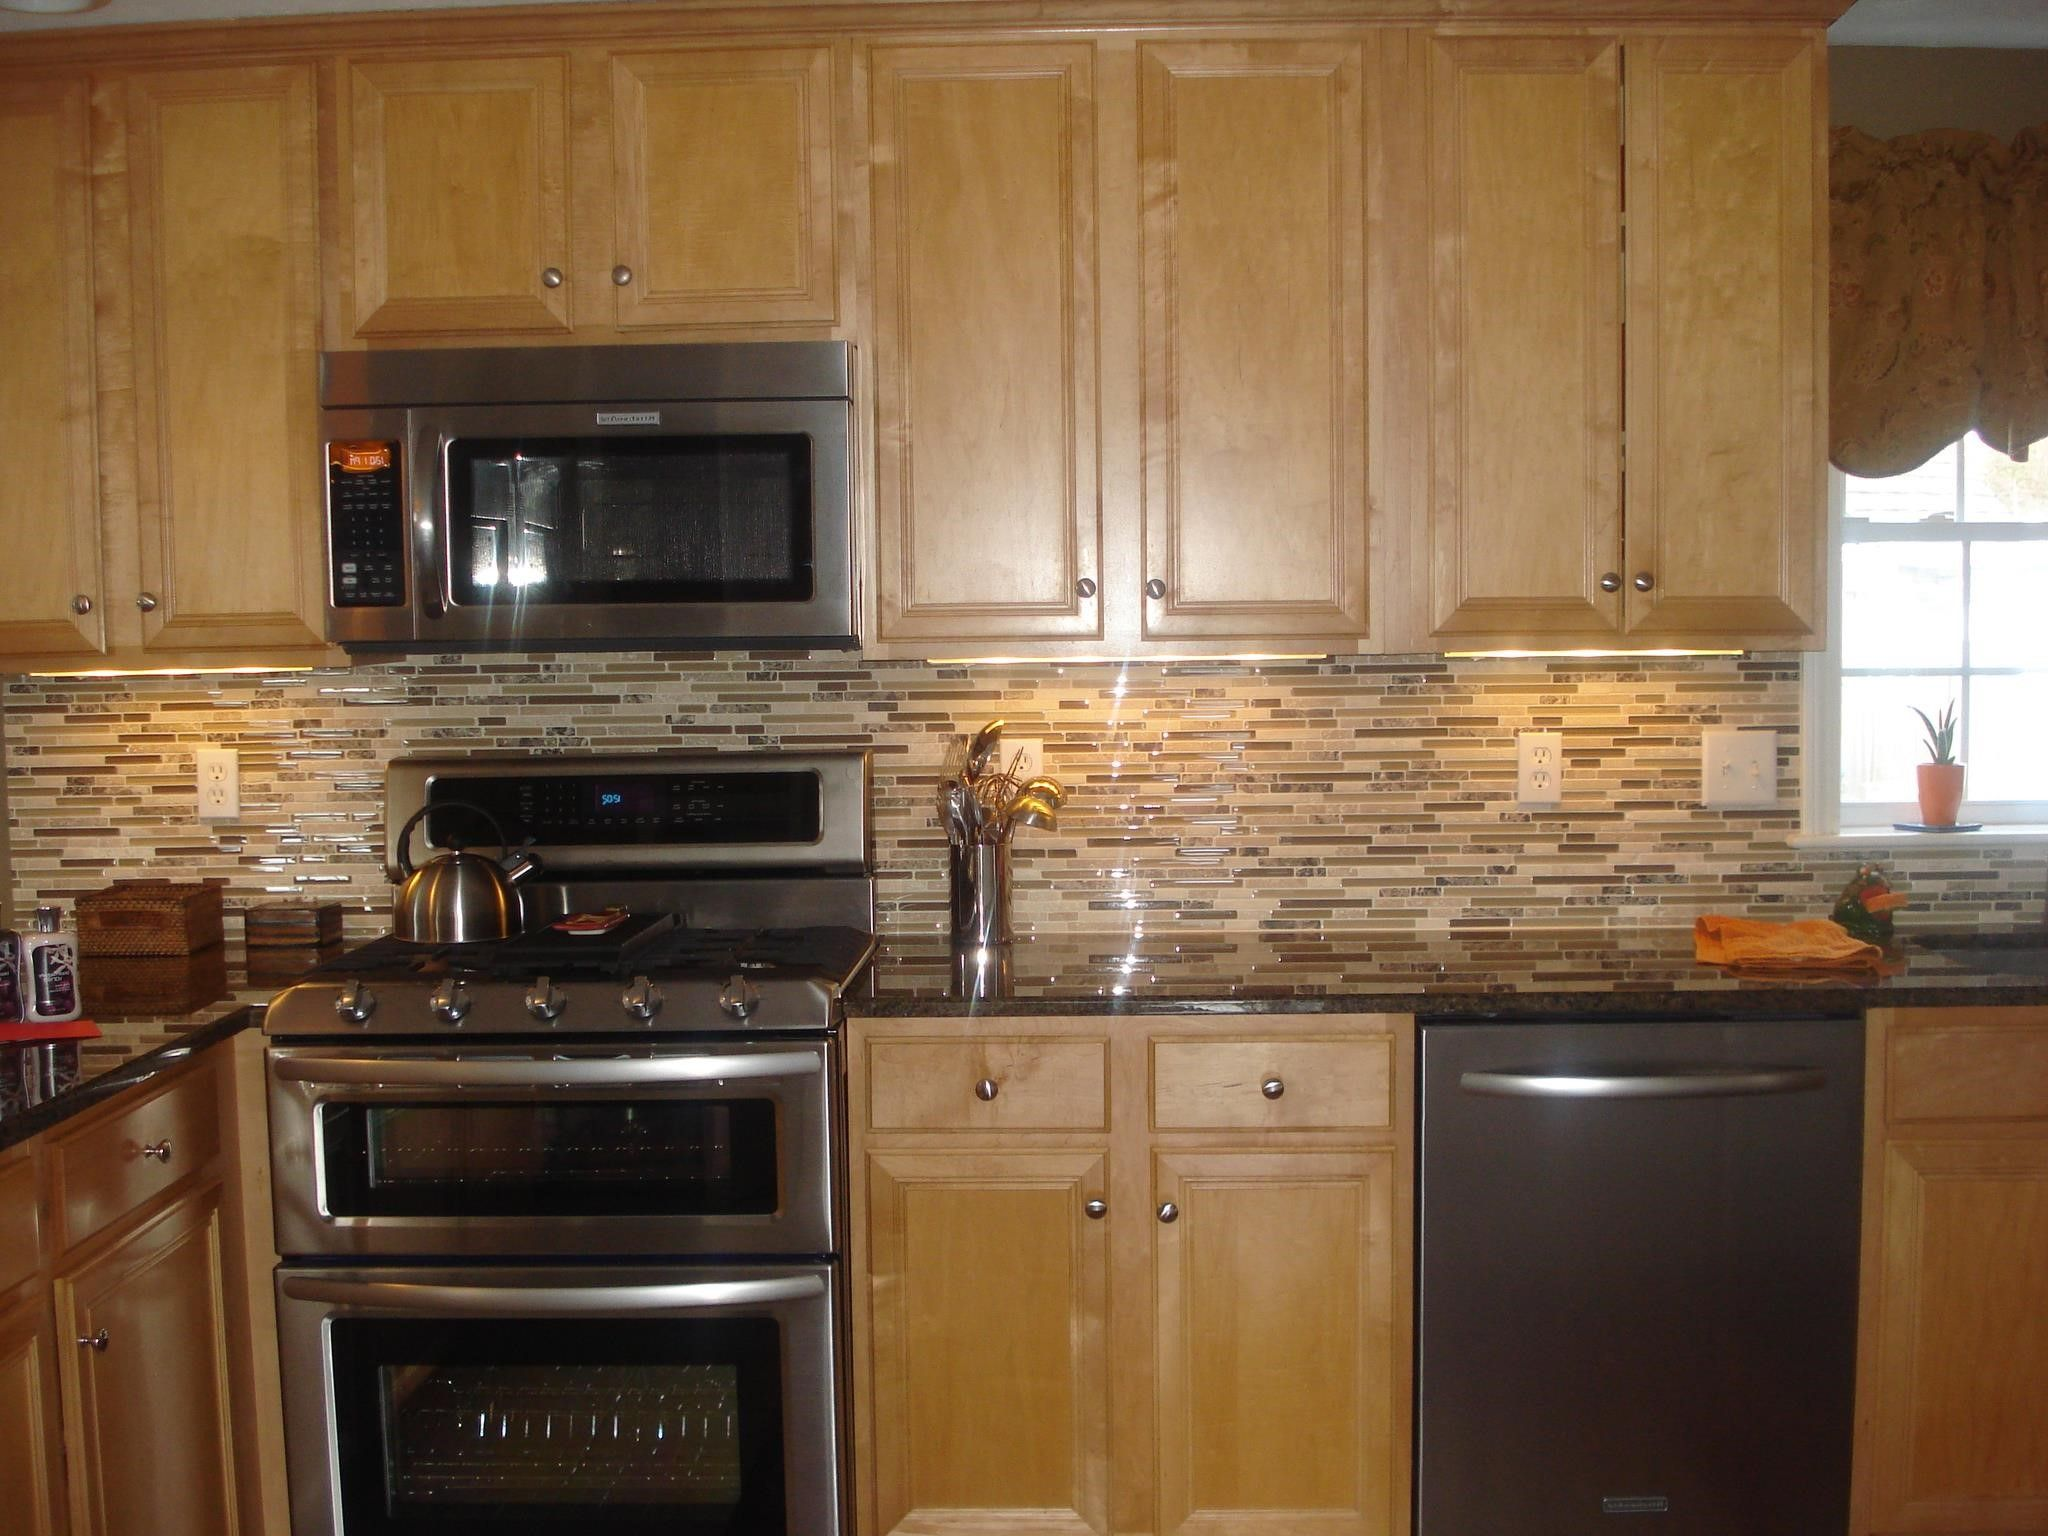 Best Glass Backsplash With Honey Maple Cabinets And Black Granite Kitchen Golden Oak Outdoor Kitchen Countertops Kitchen Colors Outdoor Kitchen Appliances